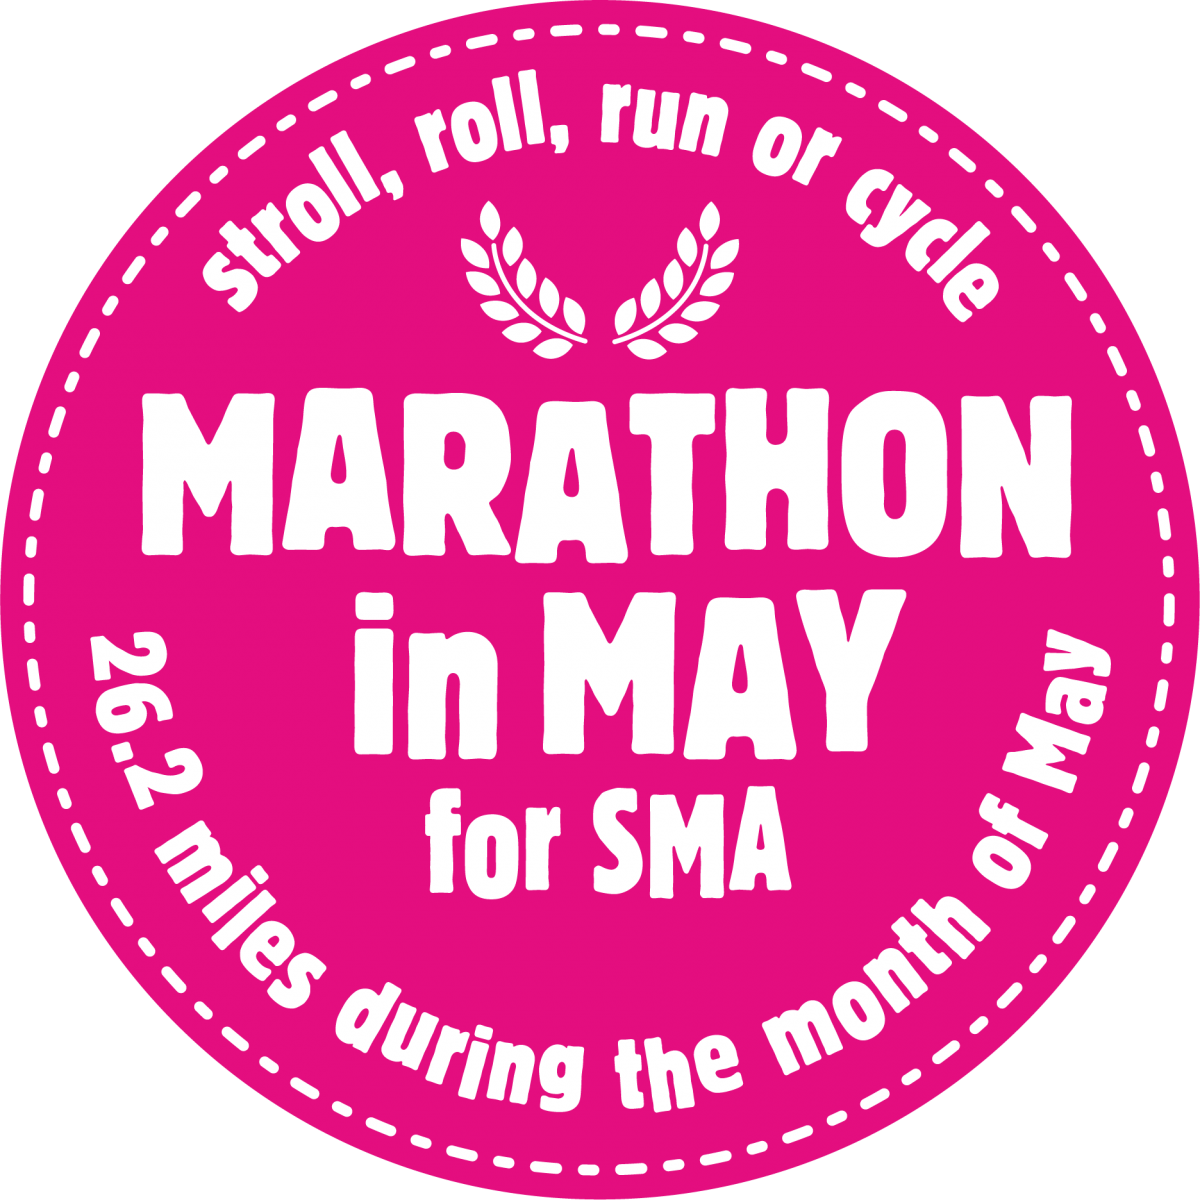 Marathon in May for SMA